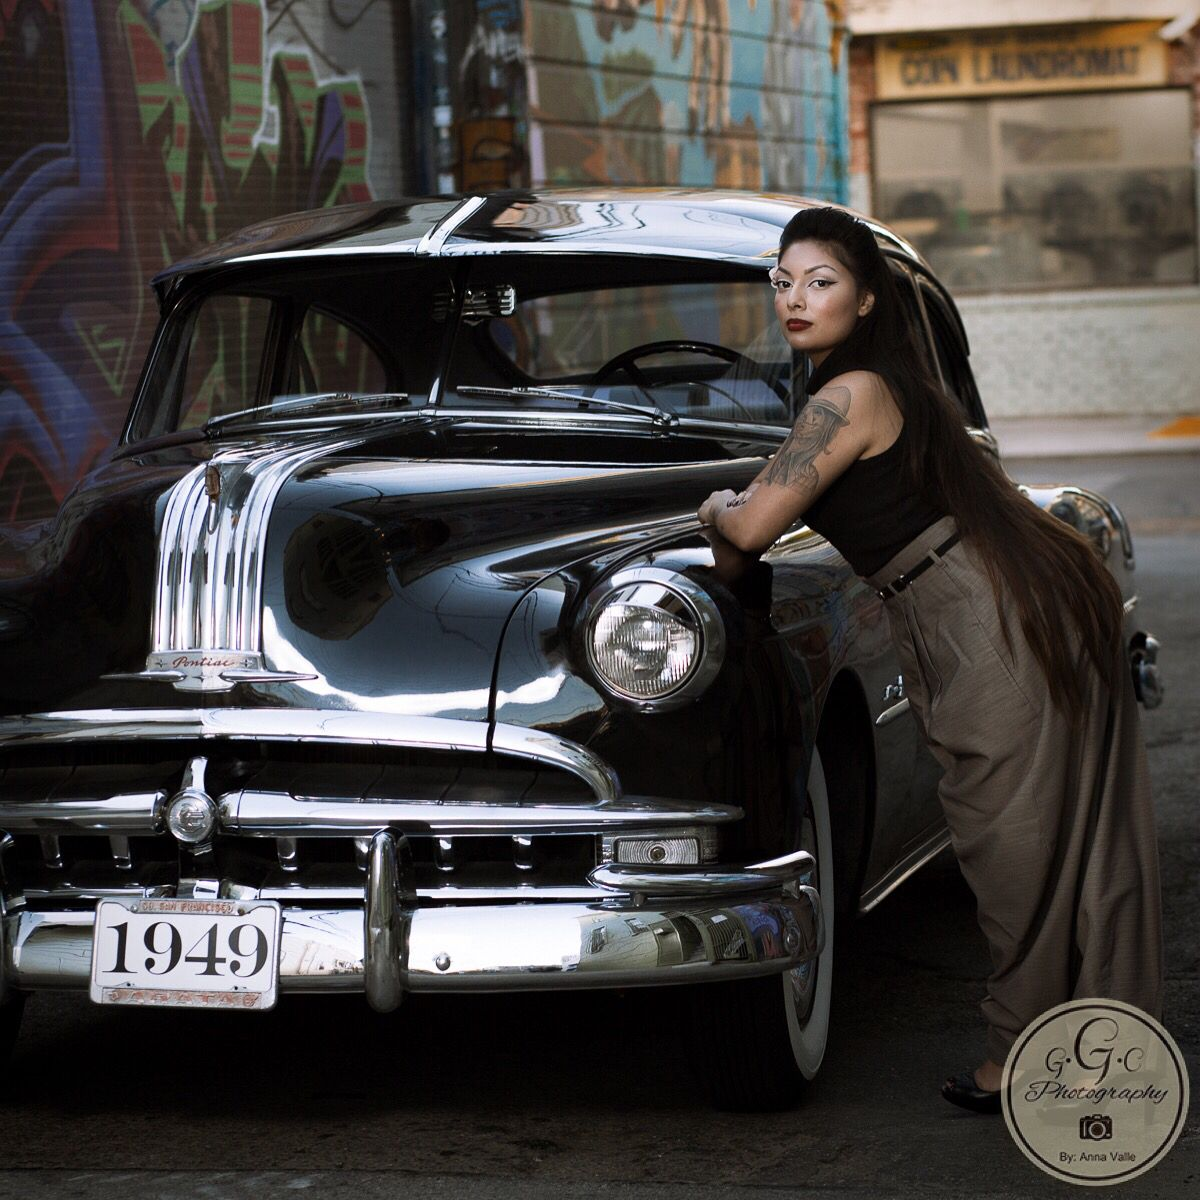 Pin by ggc by anna valle on lowrider style lowriders lowrider art chicano art chola style - Brown pride lowrider ...